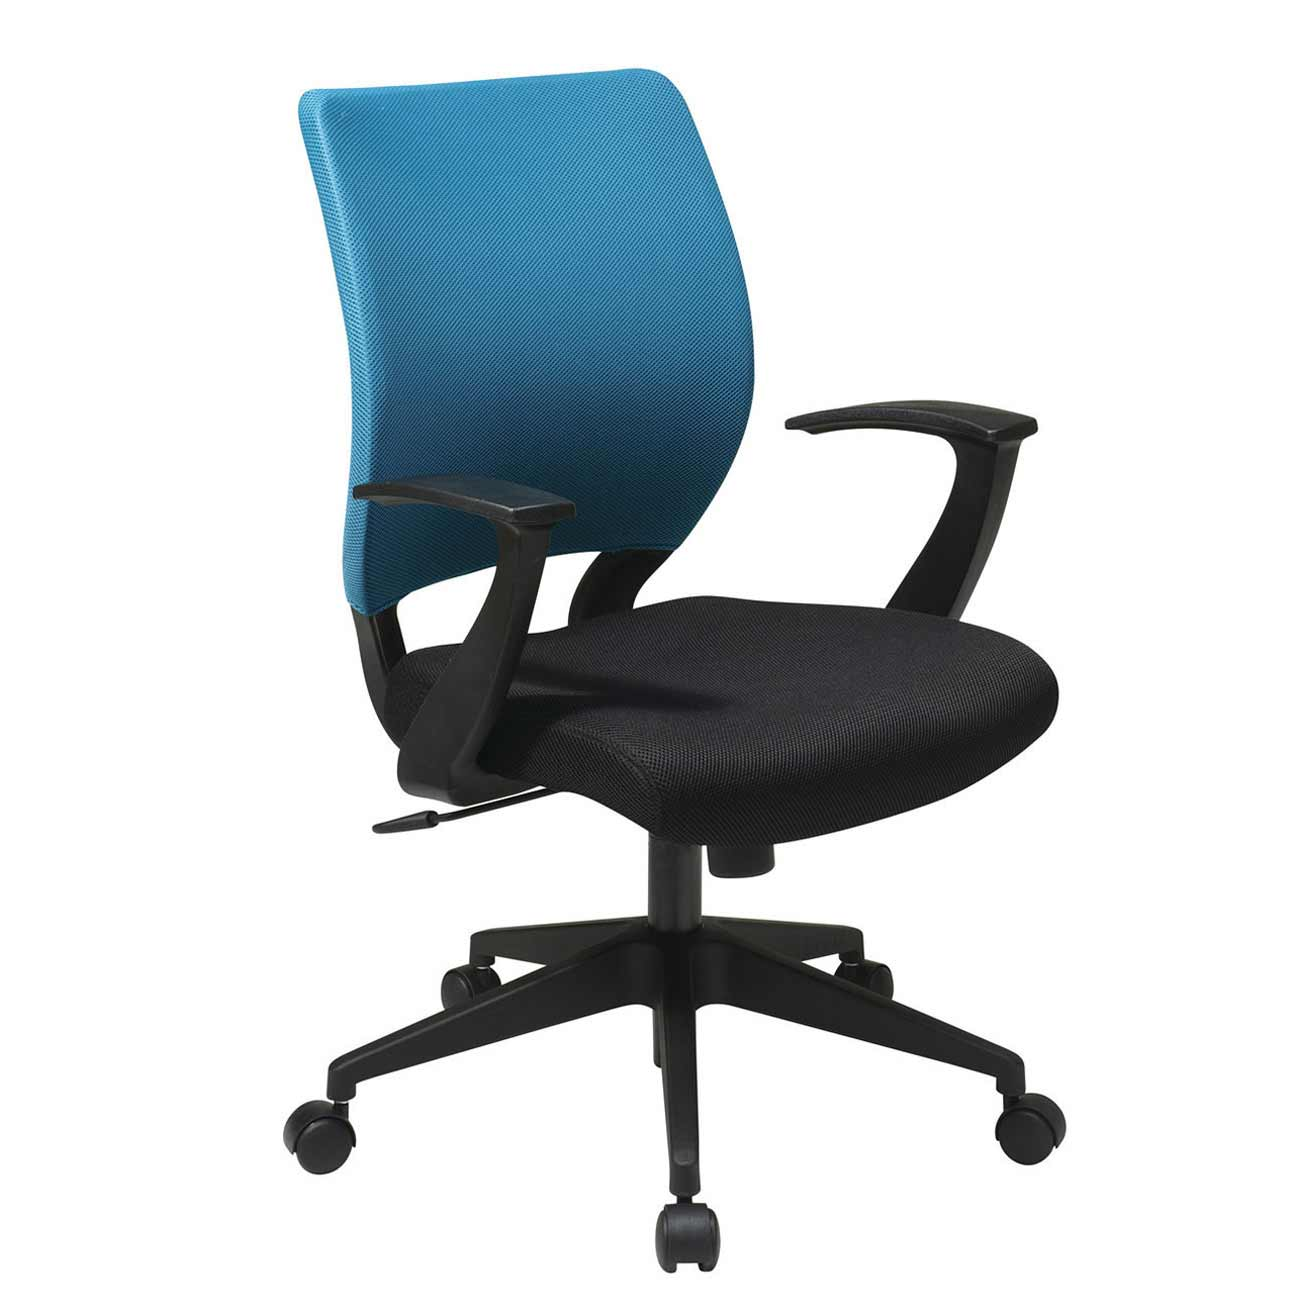 chair covers office seats kids kore wobble blue as nice interiors